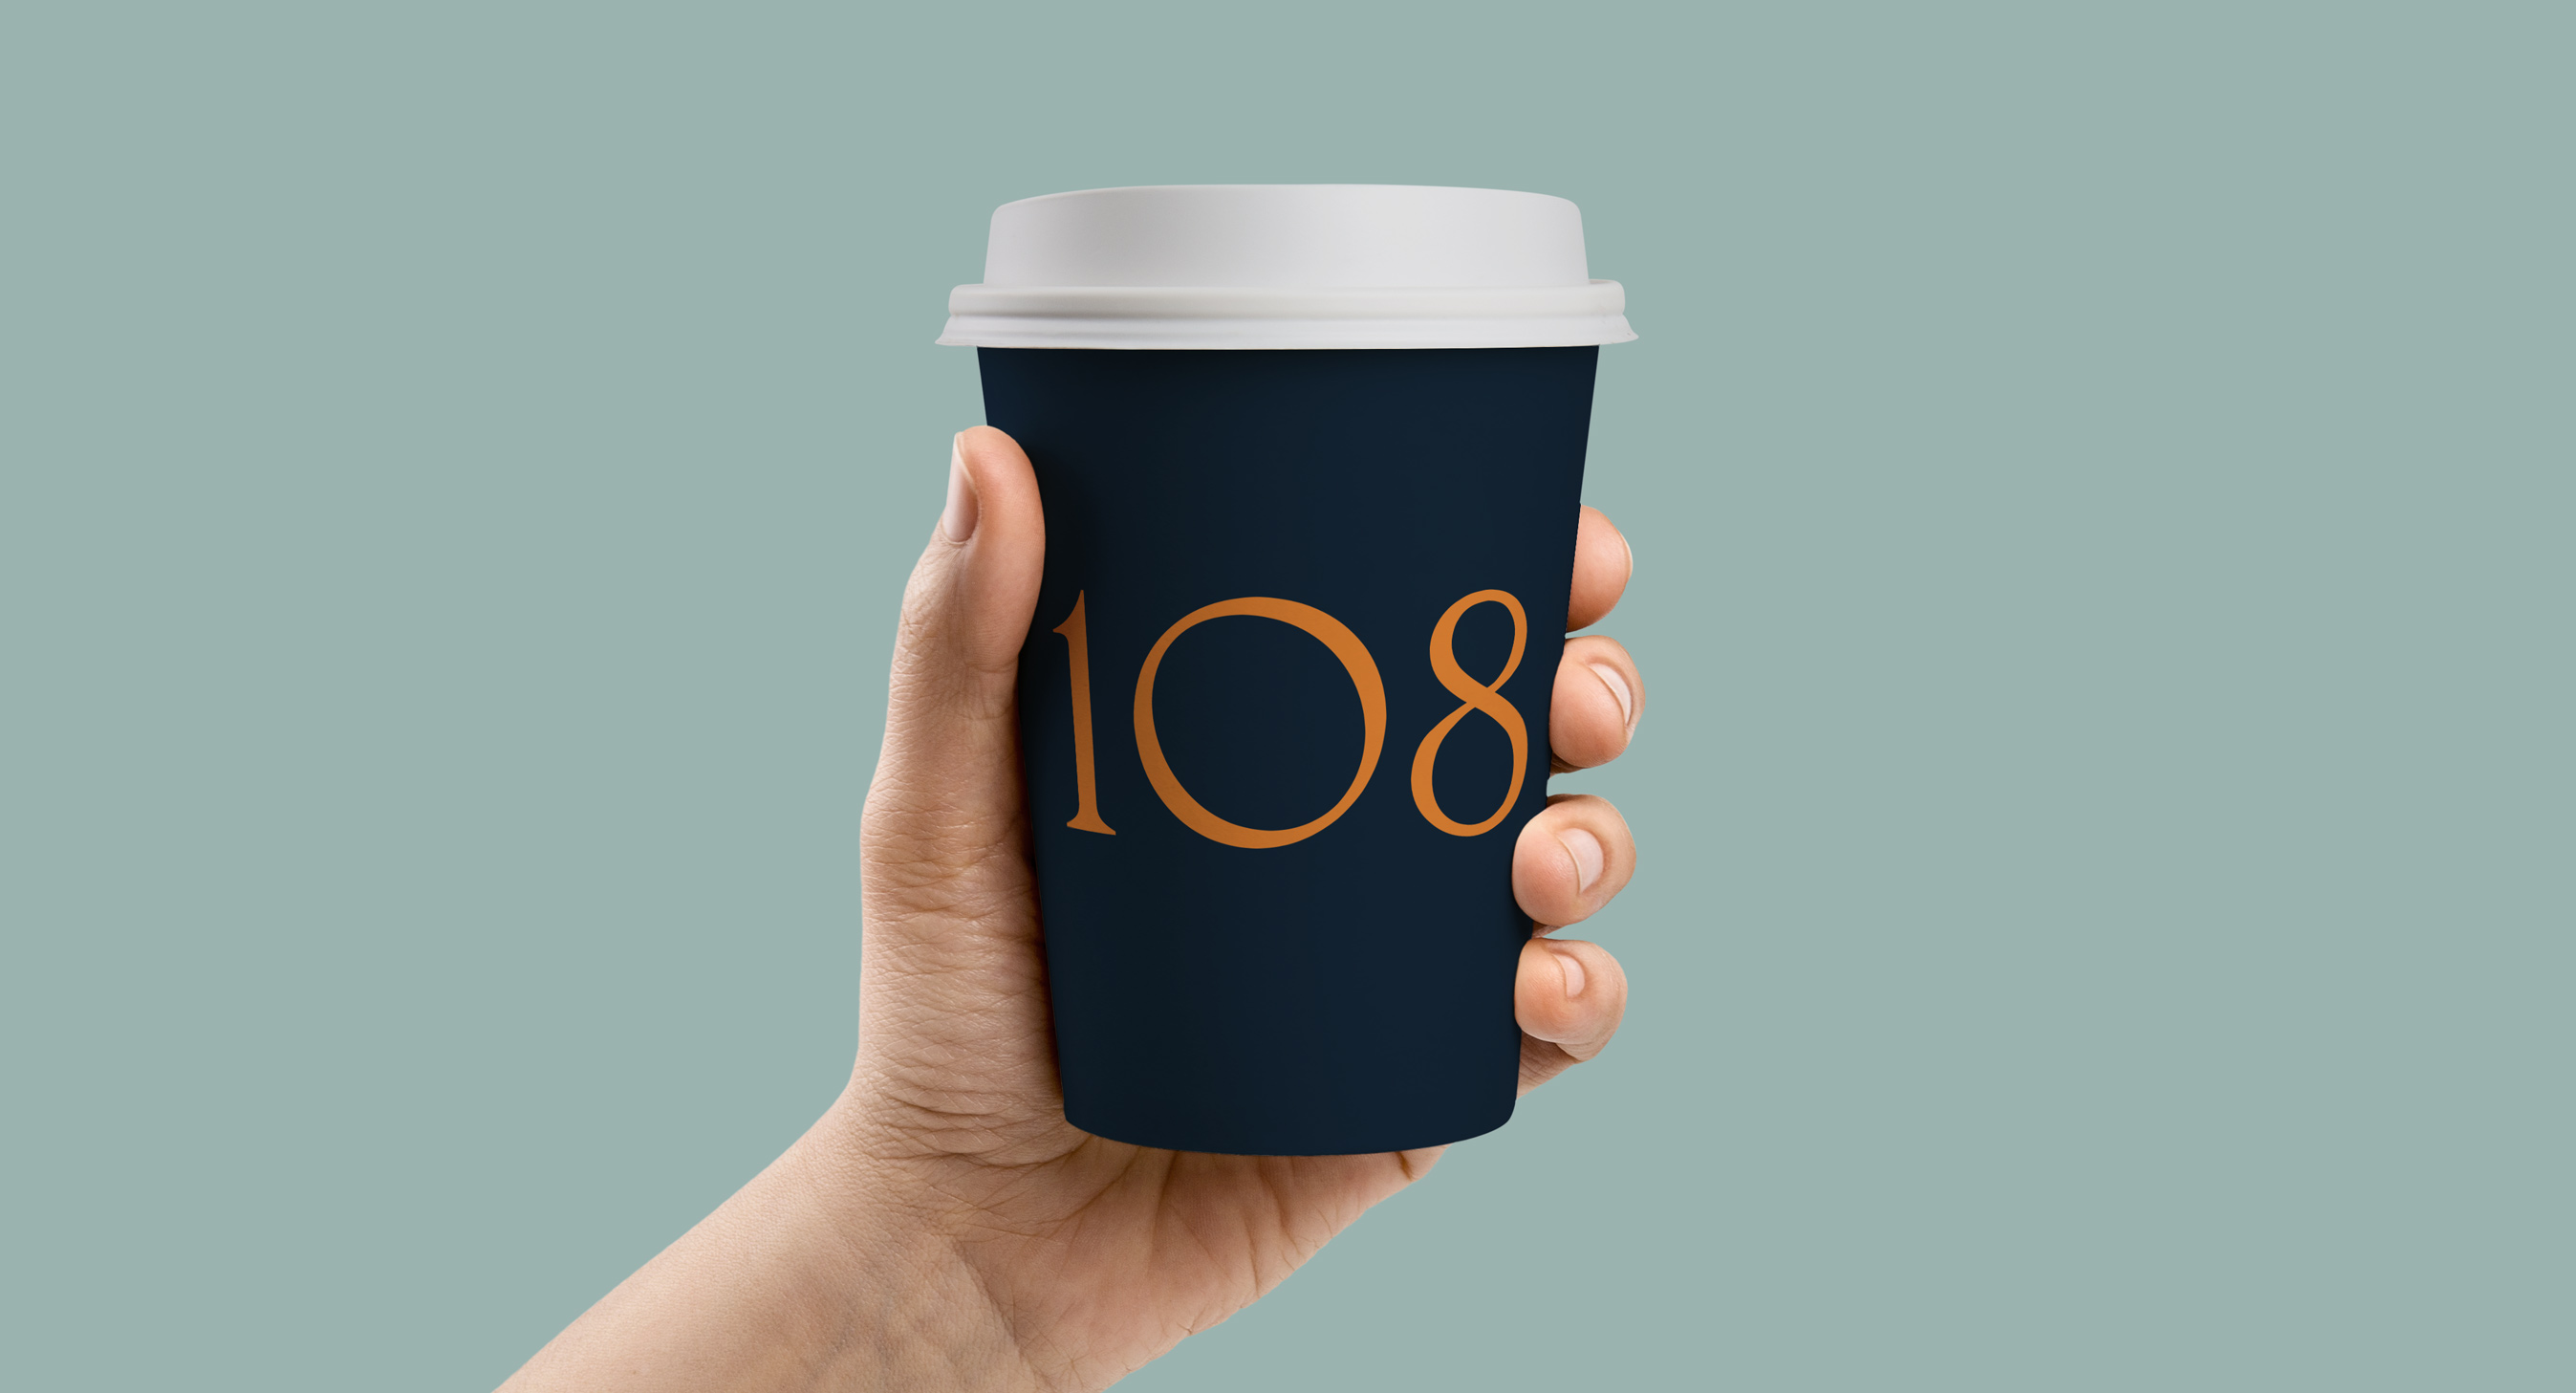 108_cup